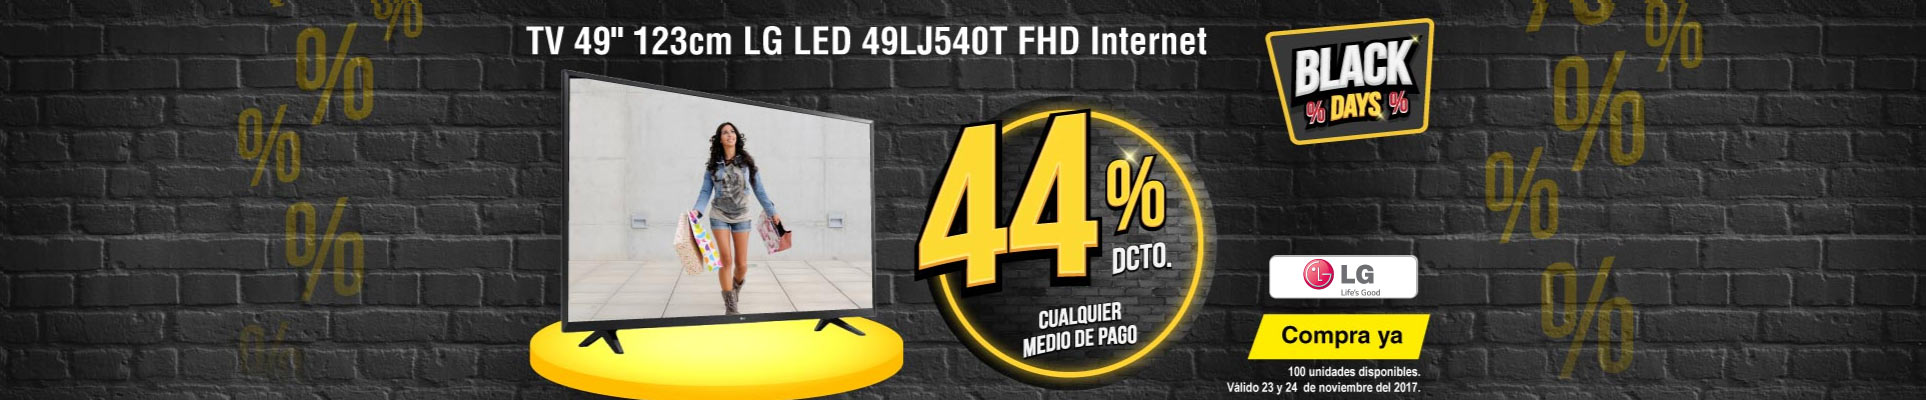 PPAL ALKP-2-tv-TV 49 123cm LG LED 49LJ540T FHD Internet-prod-noviembre23-24-blackfriday